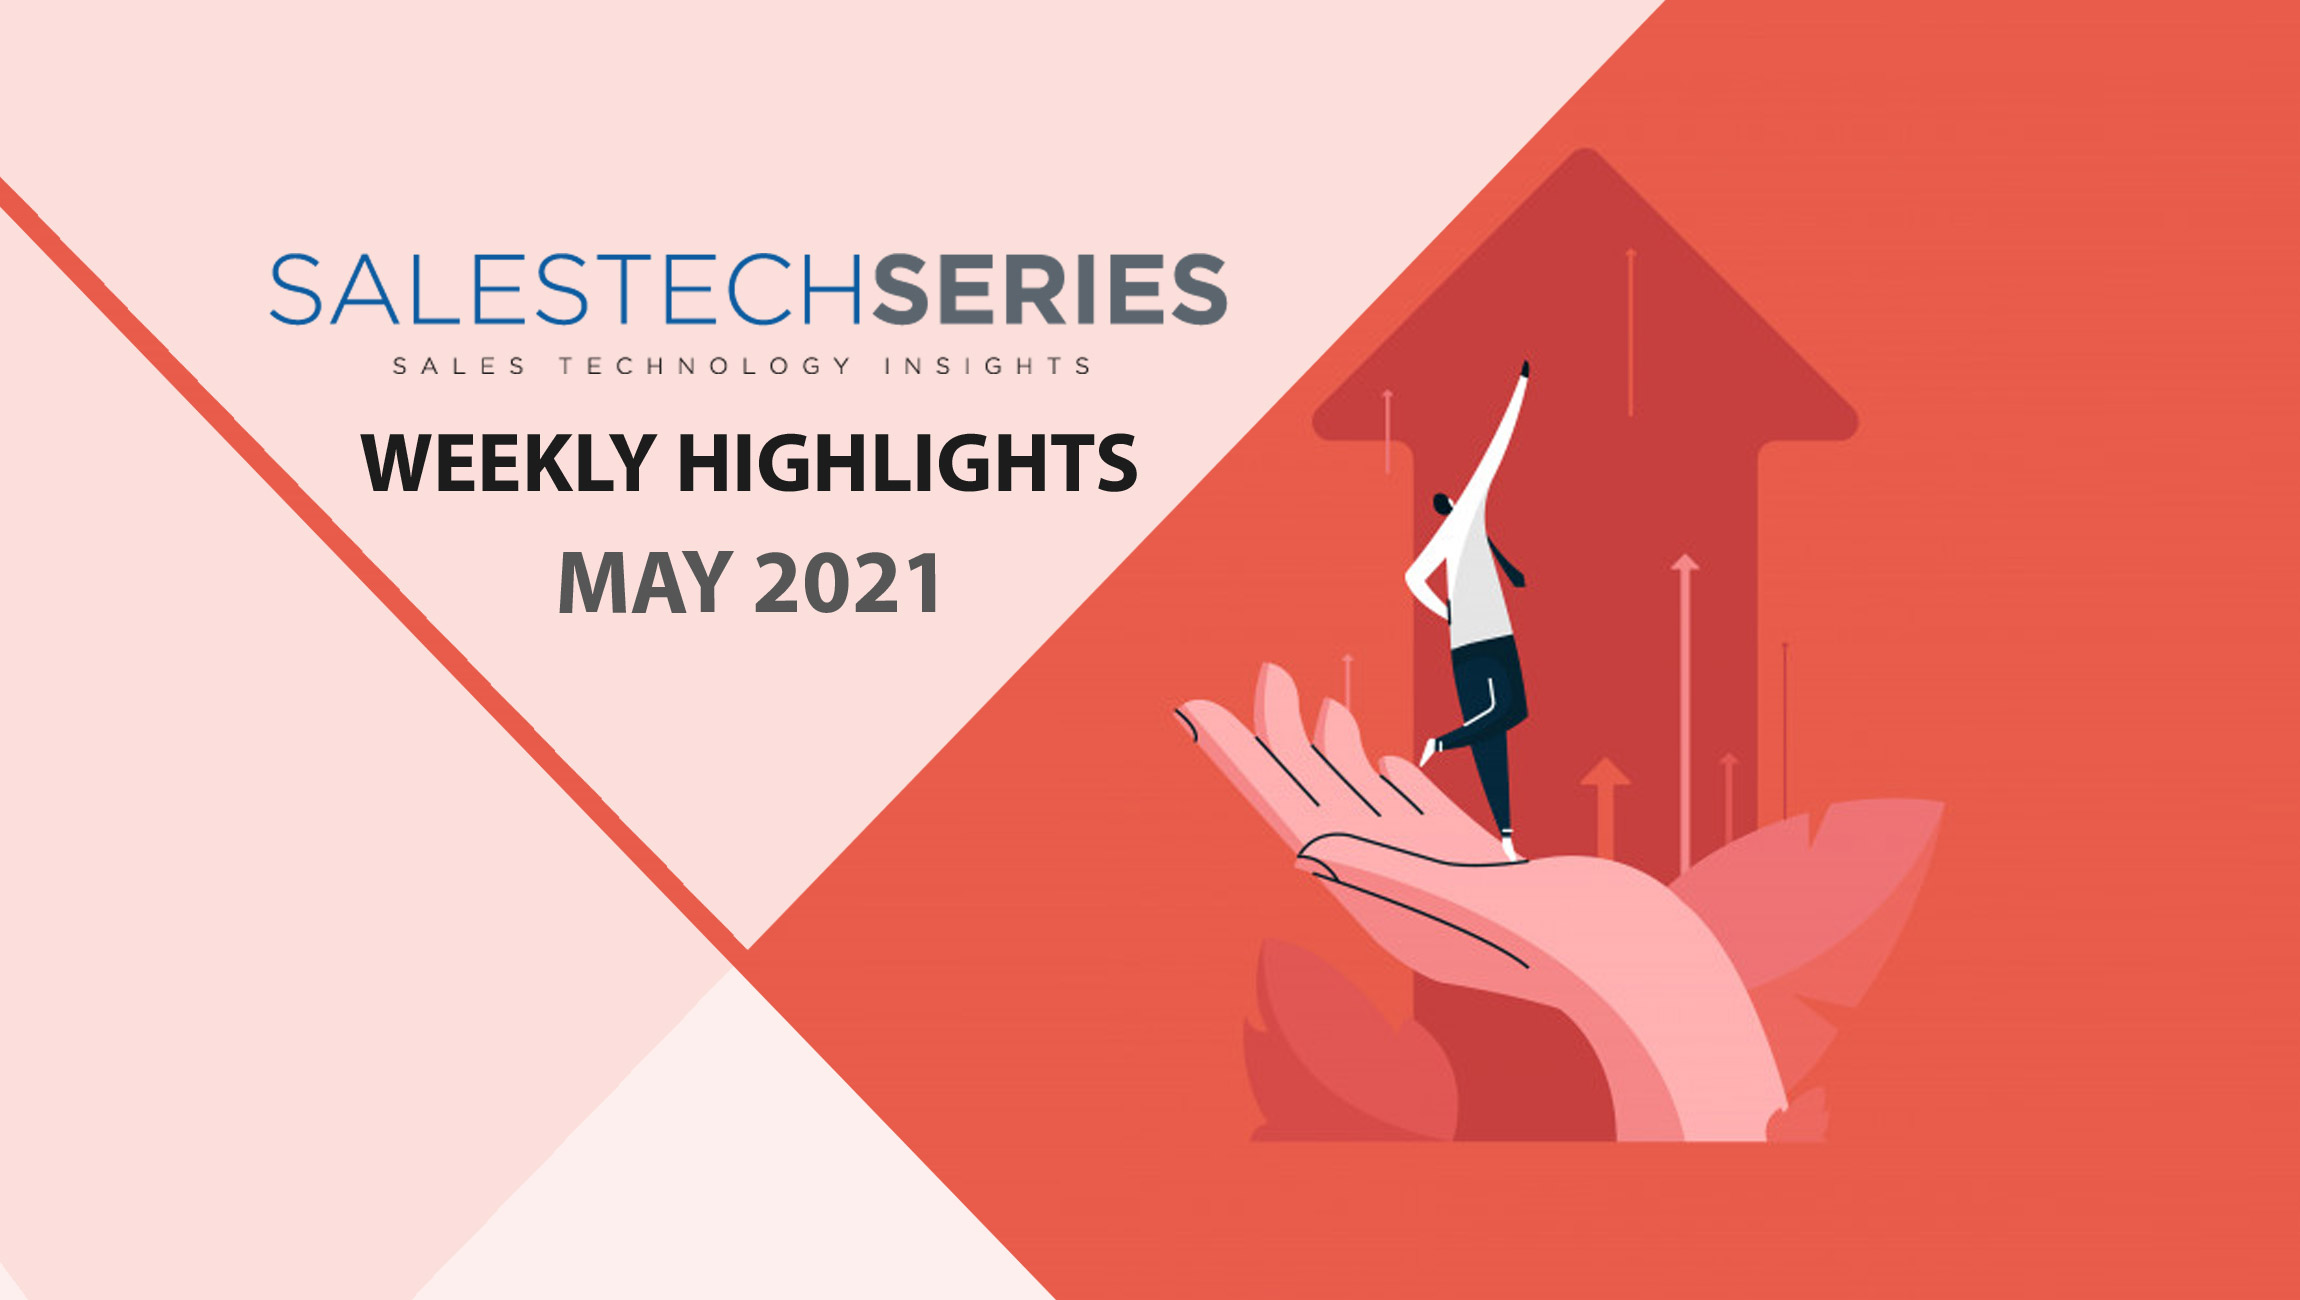 Sales Technology Highlights Of The Week: 03rd May-2021: Featuring Salesforce, Pipeliner, ON24, ChannelAdvisor